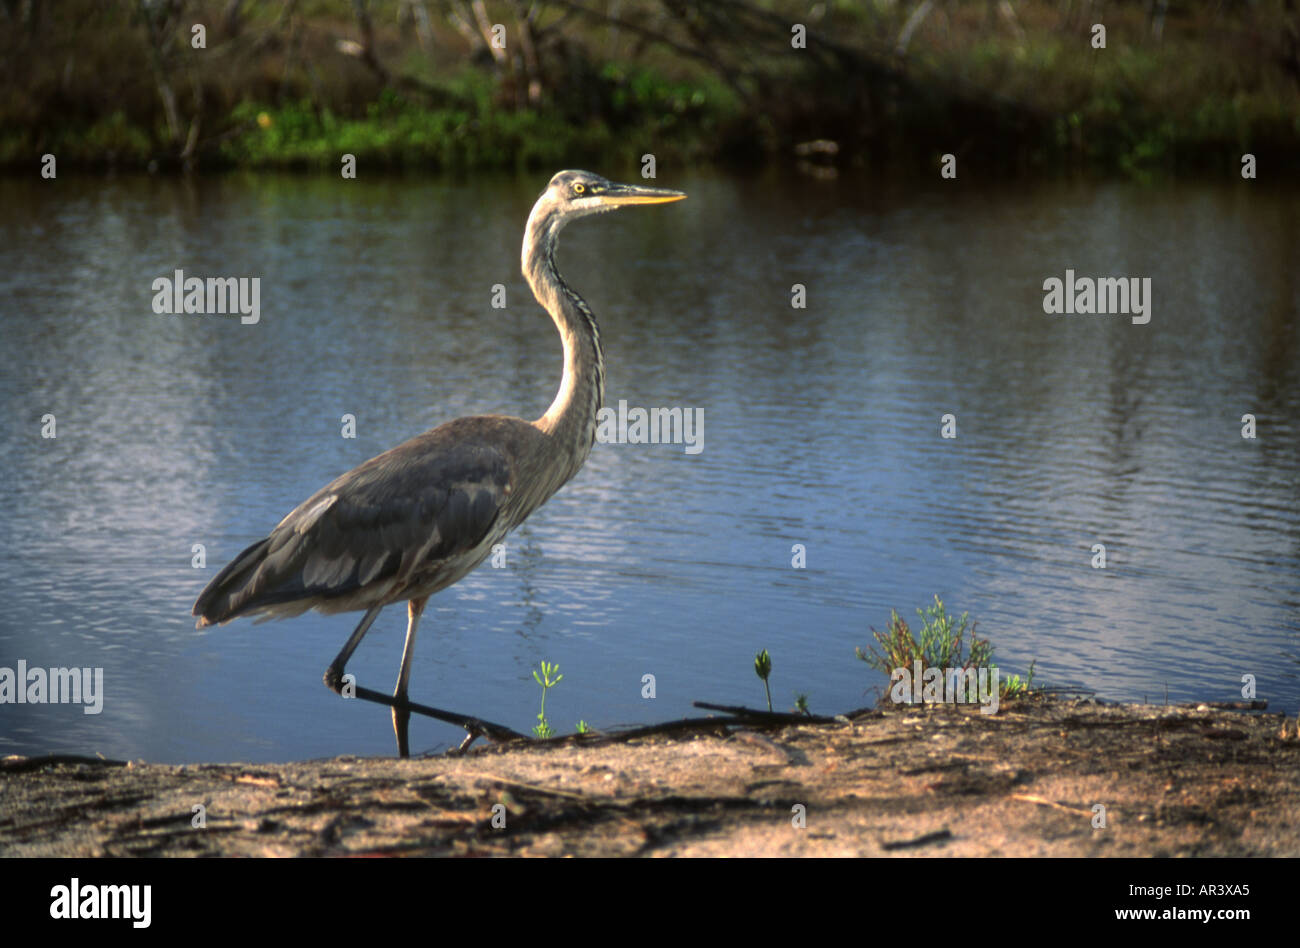 Great Blue Heron Stalking - Stock Image